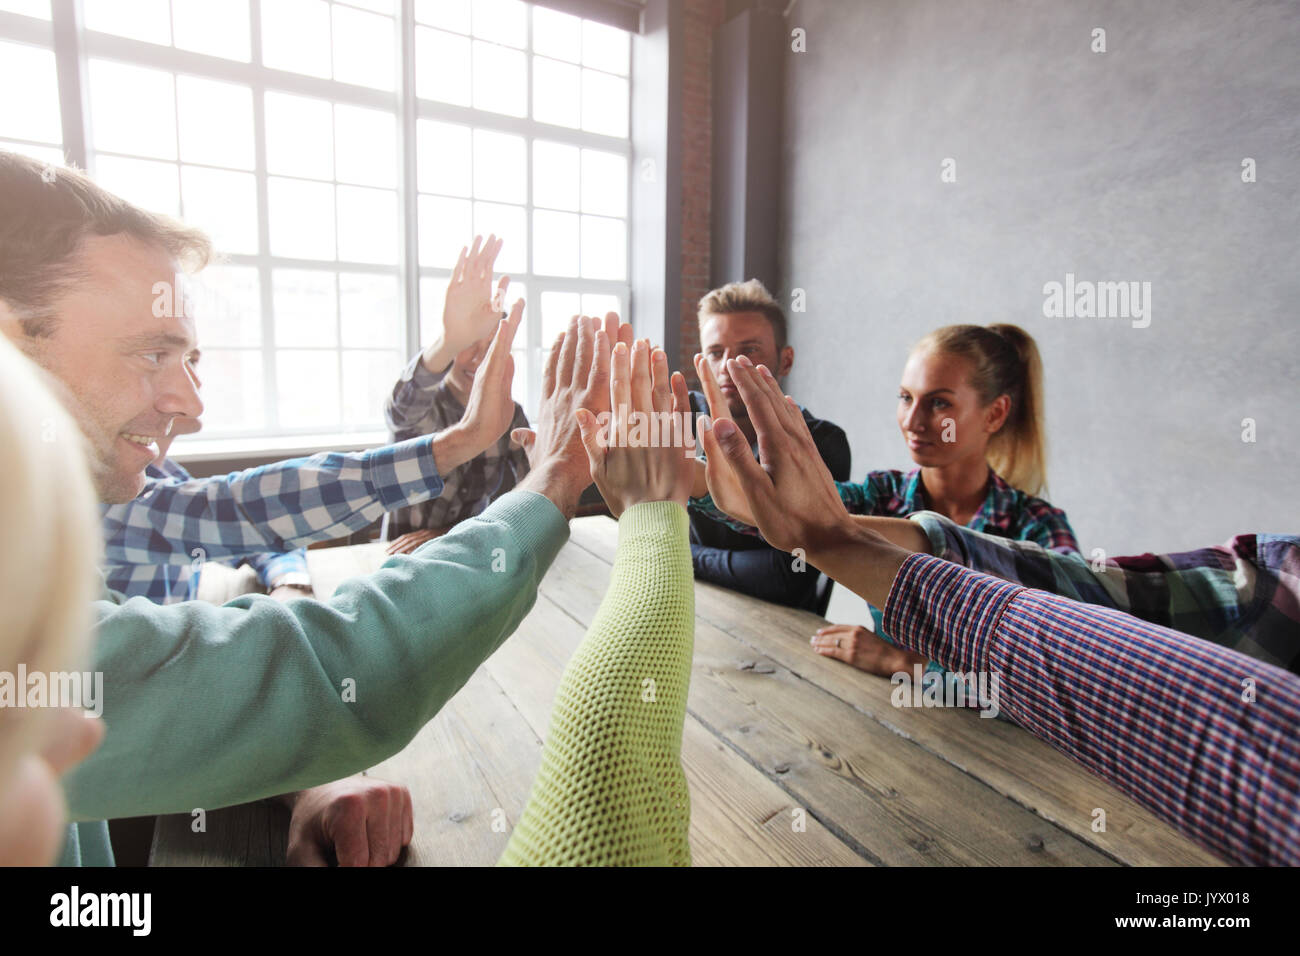 Modern business meeting concept, people in casual clothes sitting around wooden table giving high five - Stock Image